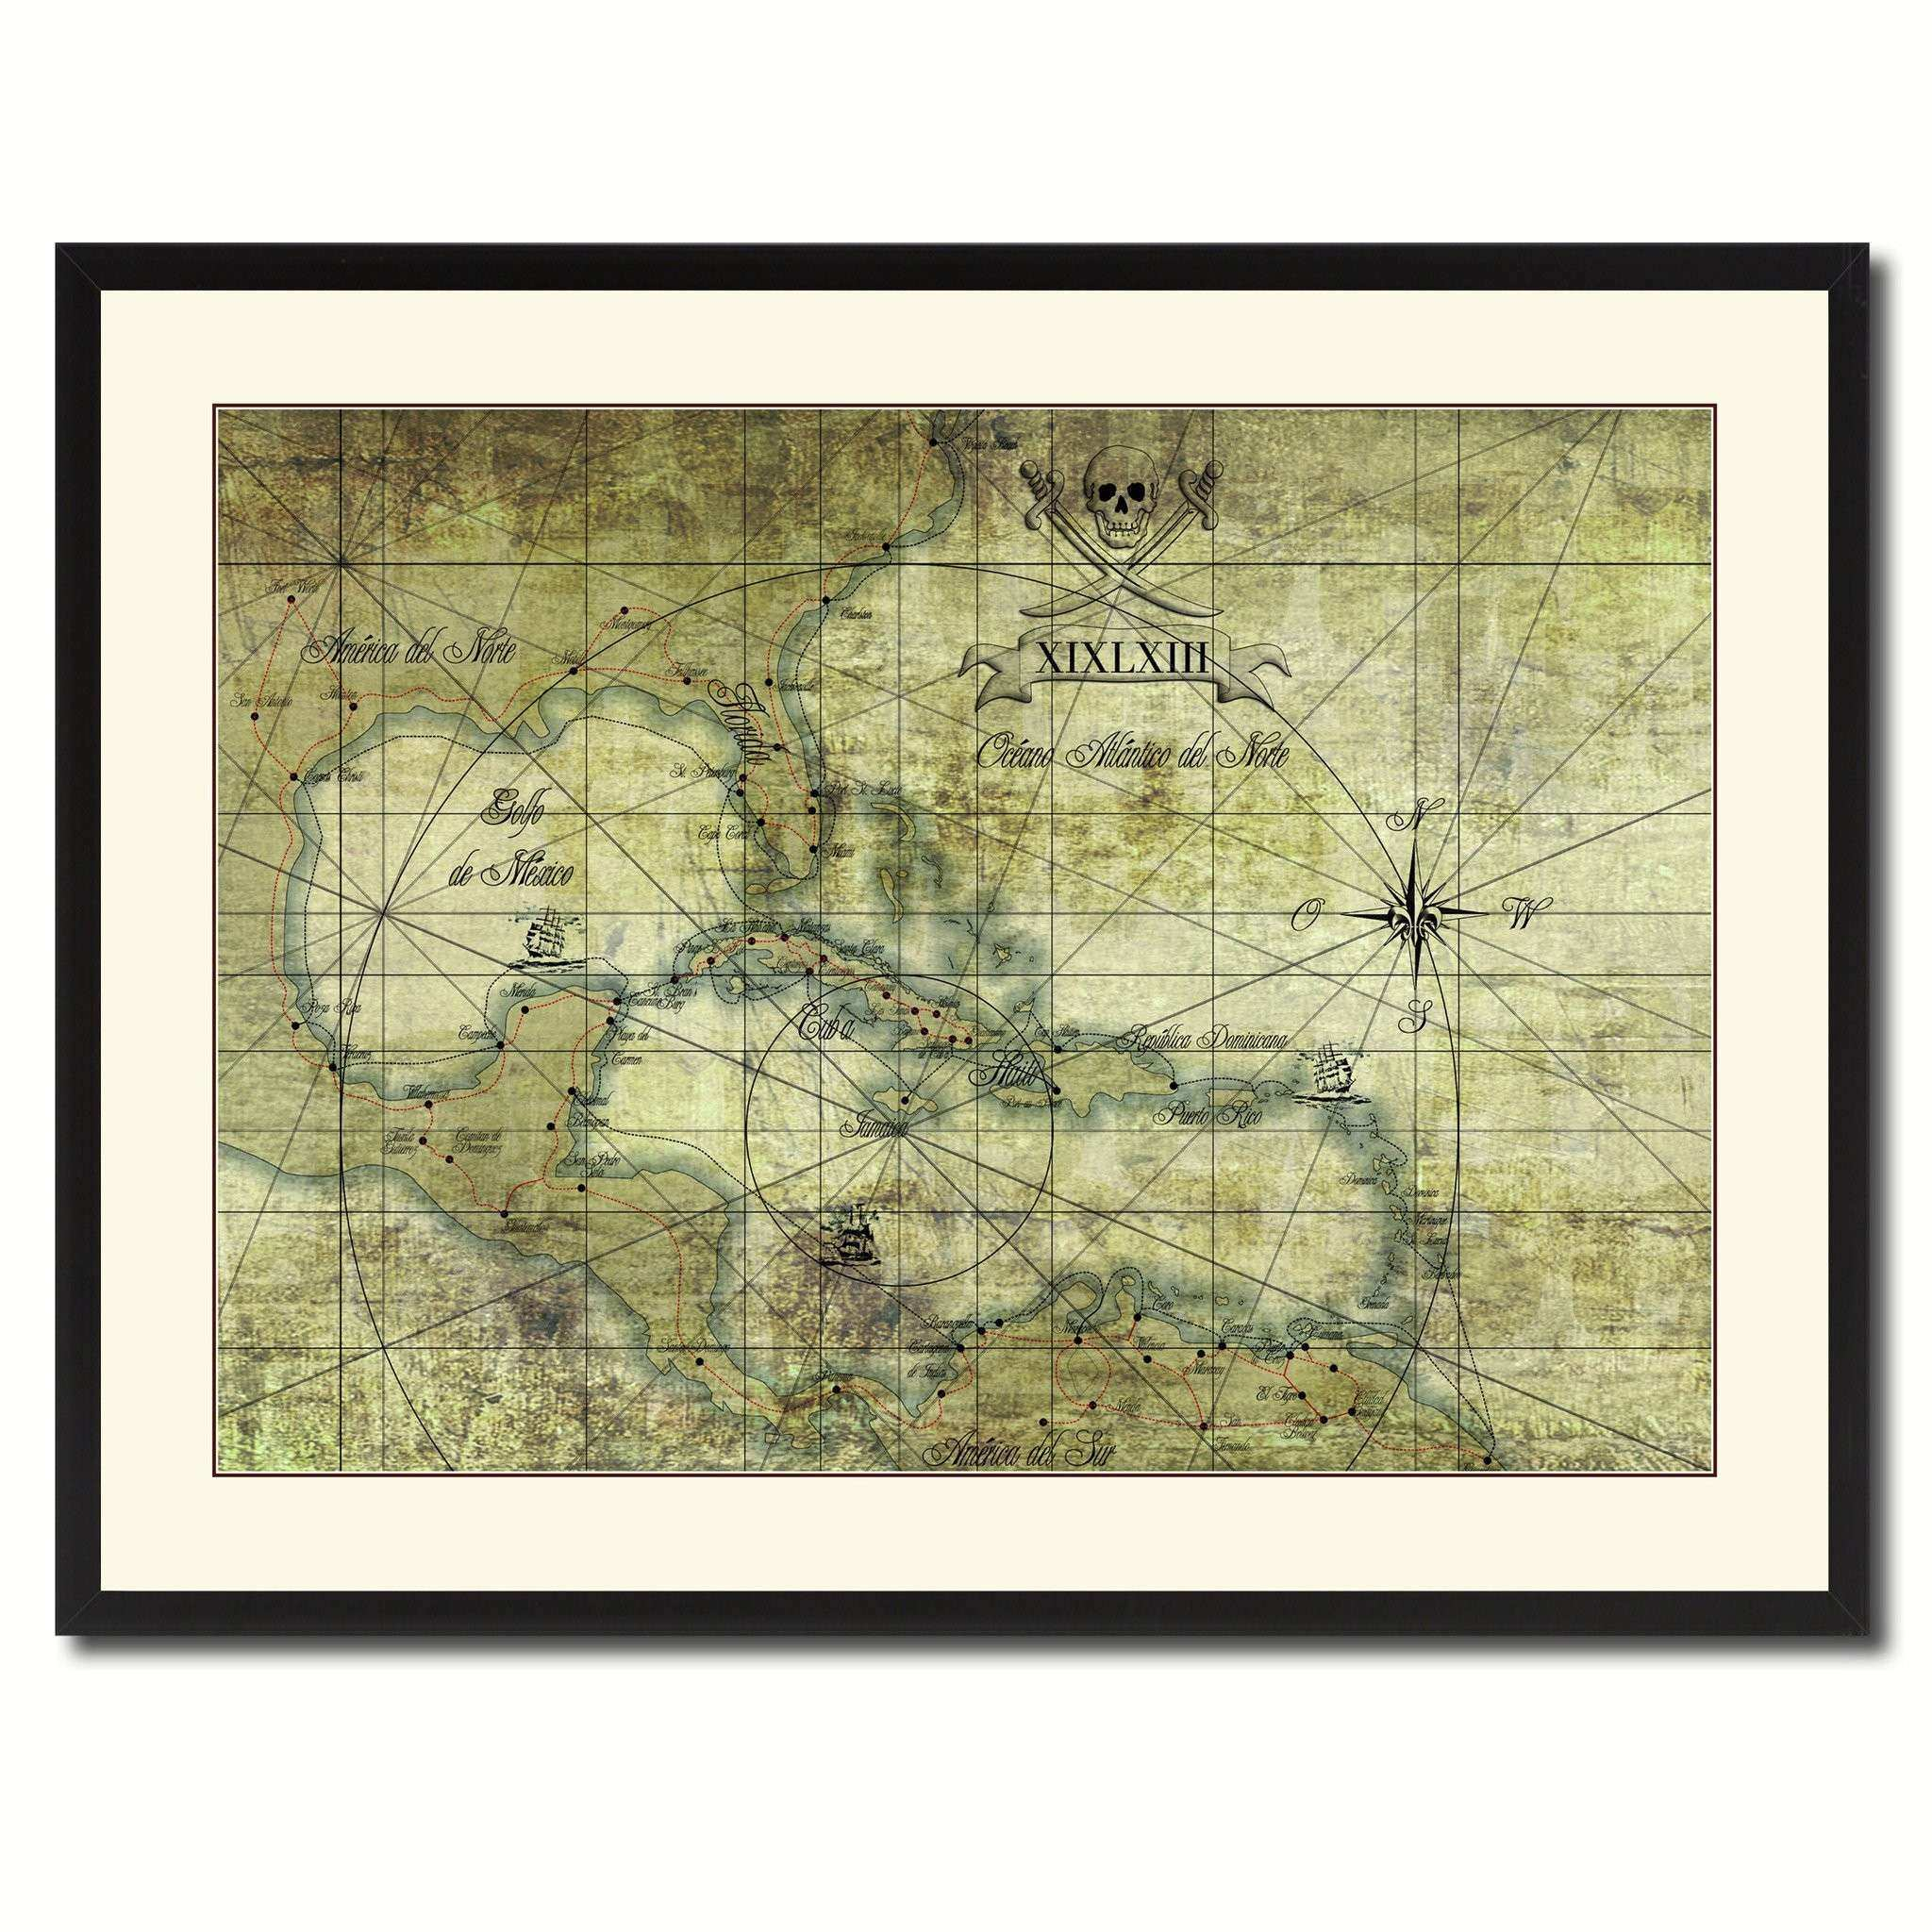 Caribbean Vintage Antique Map Wall Art Home Decor Gift